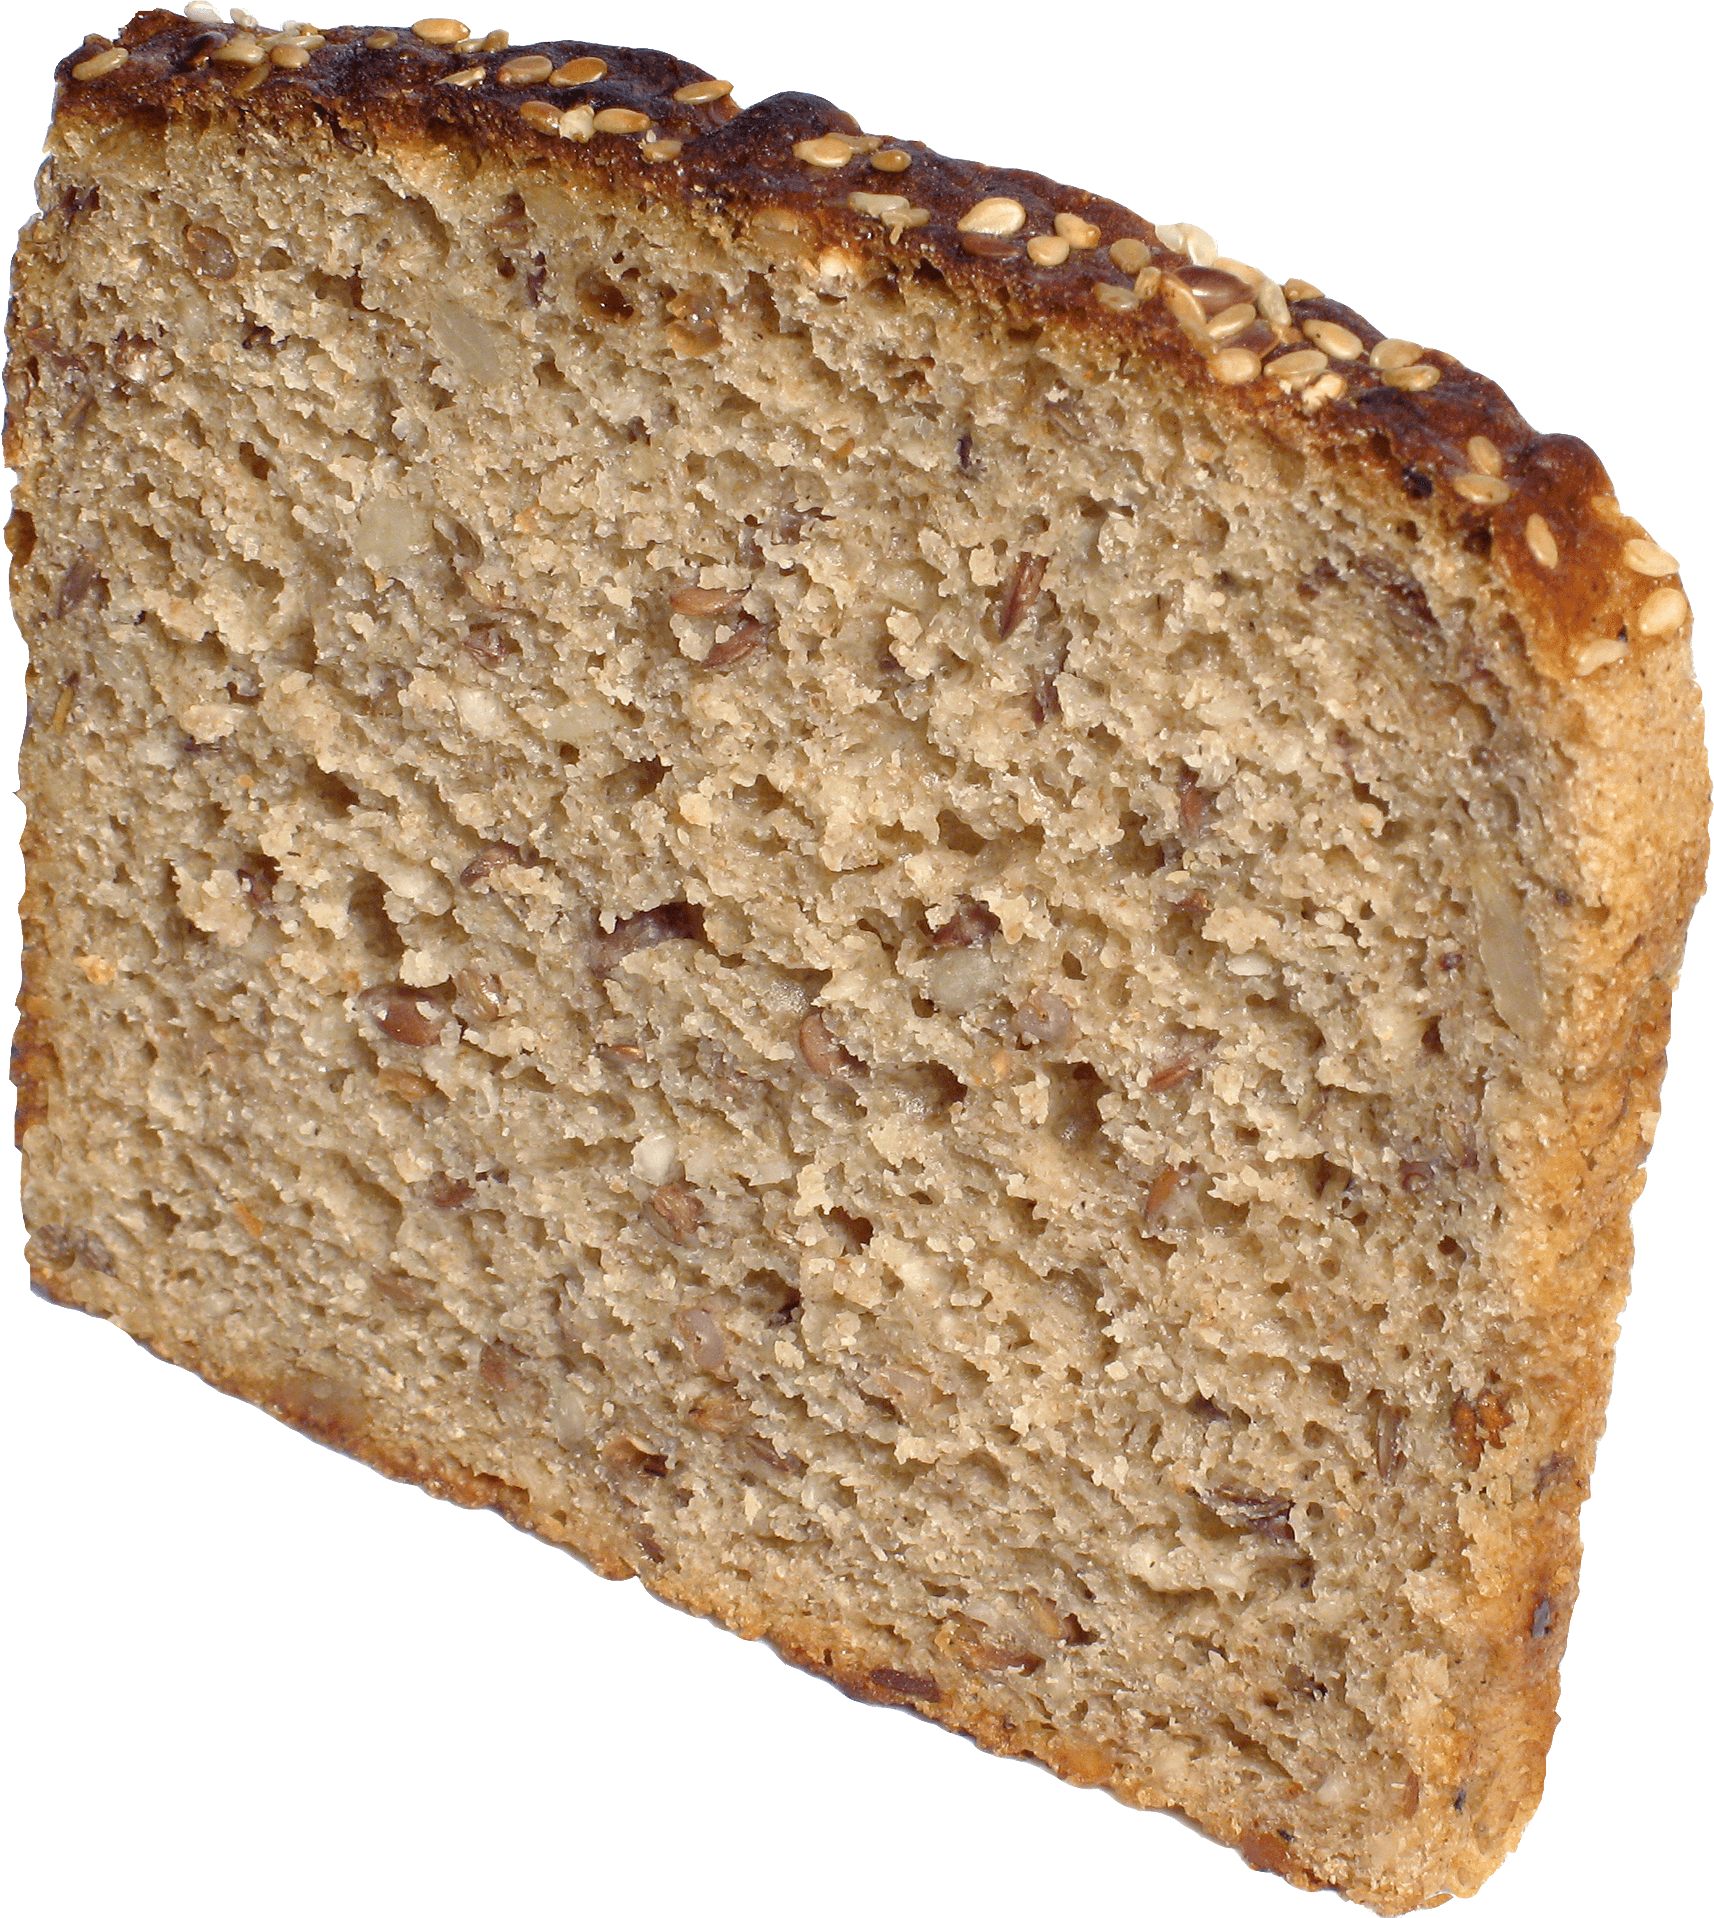 Transparent toast brown. Slice of bread png